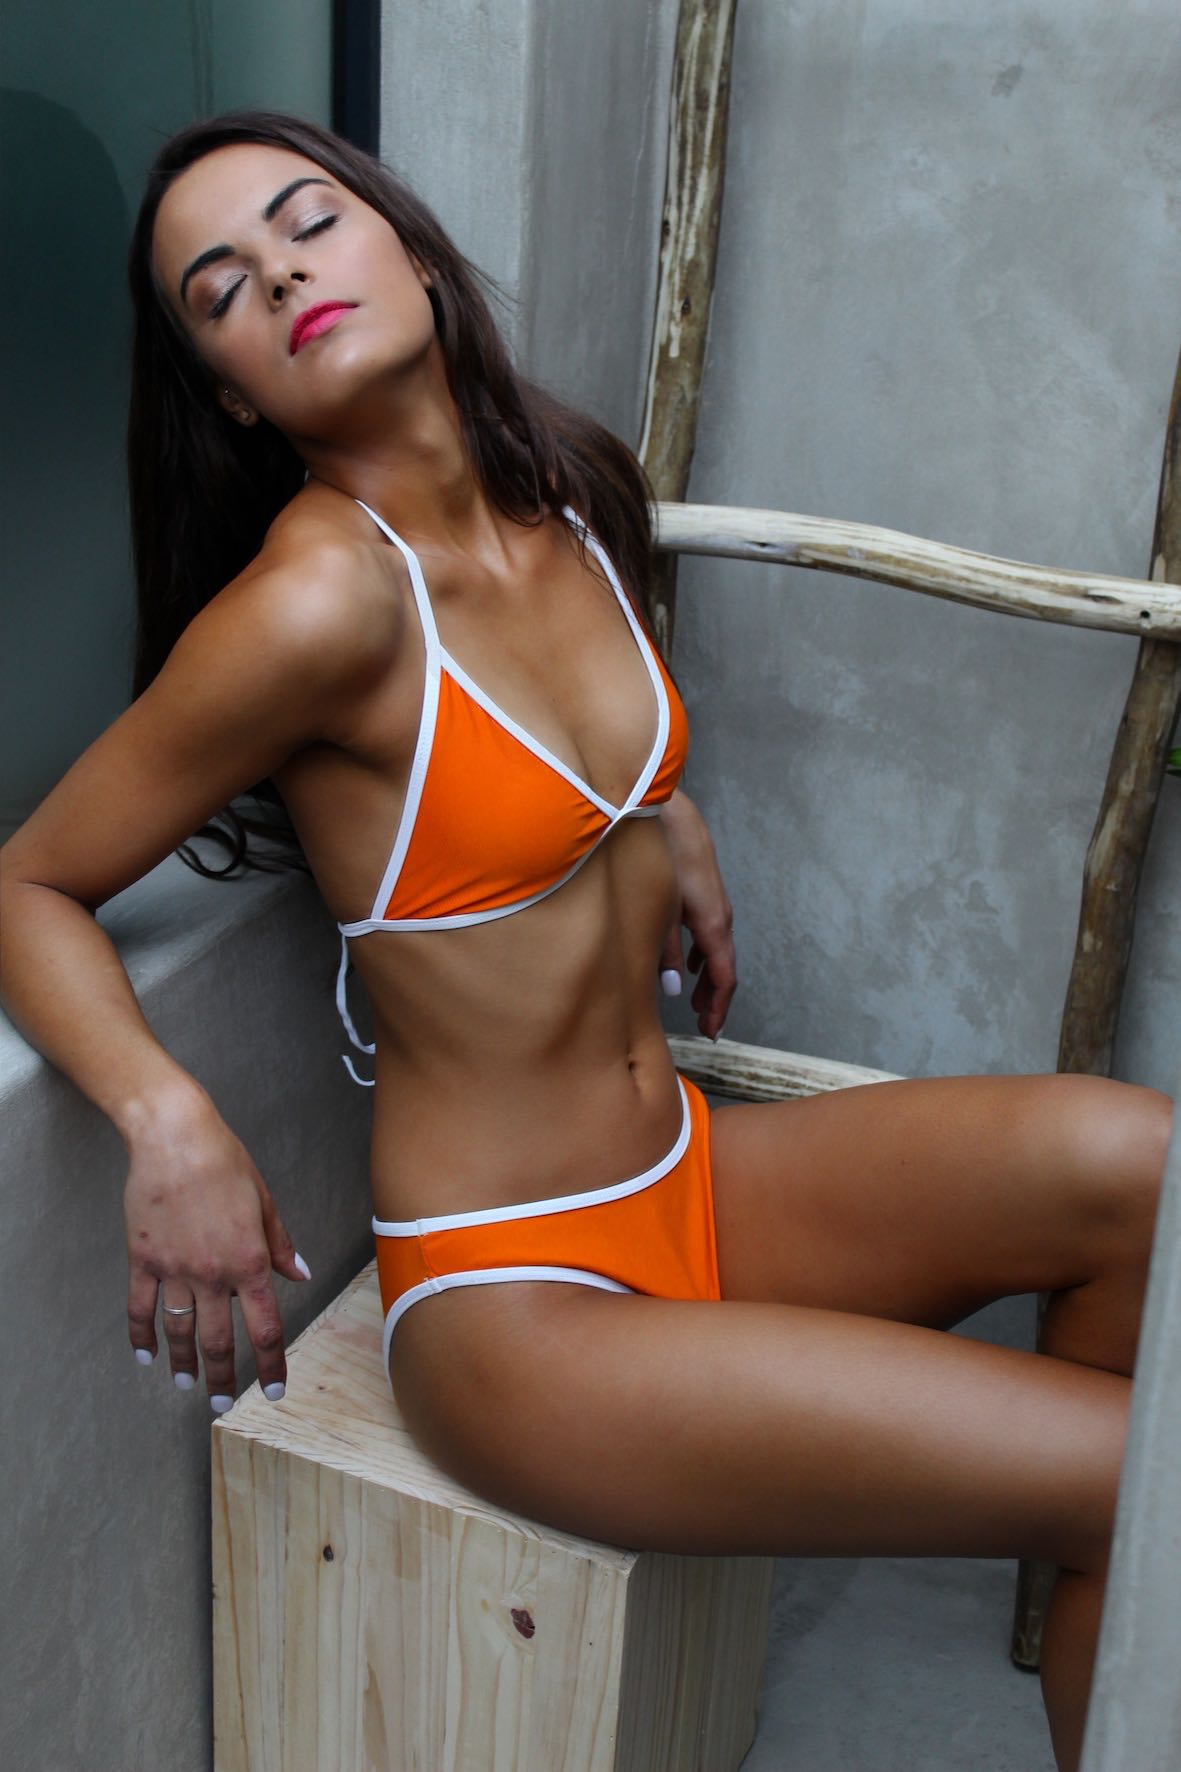 Meet Melissa van Tonder as this week's LW Babe